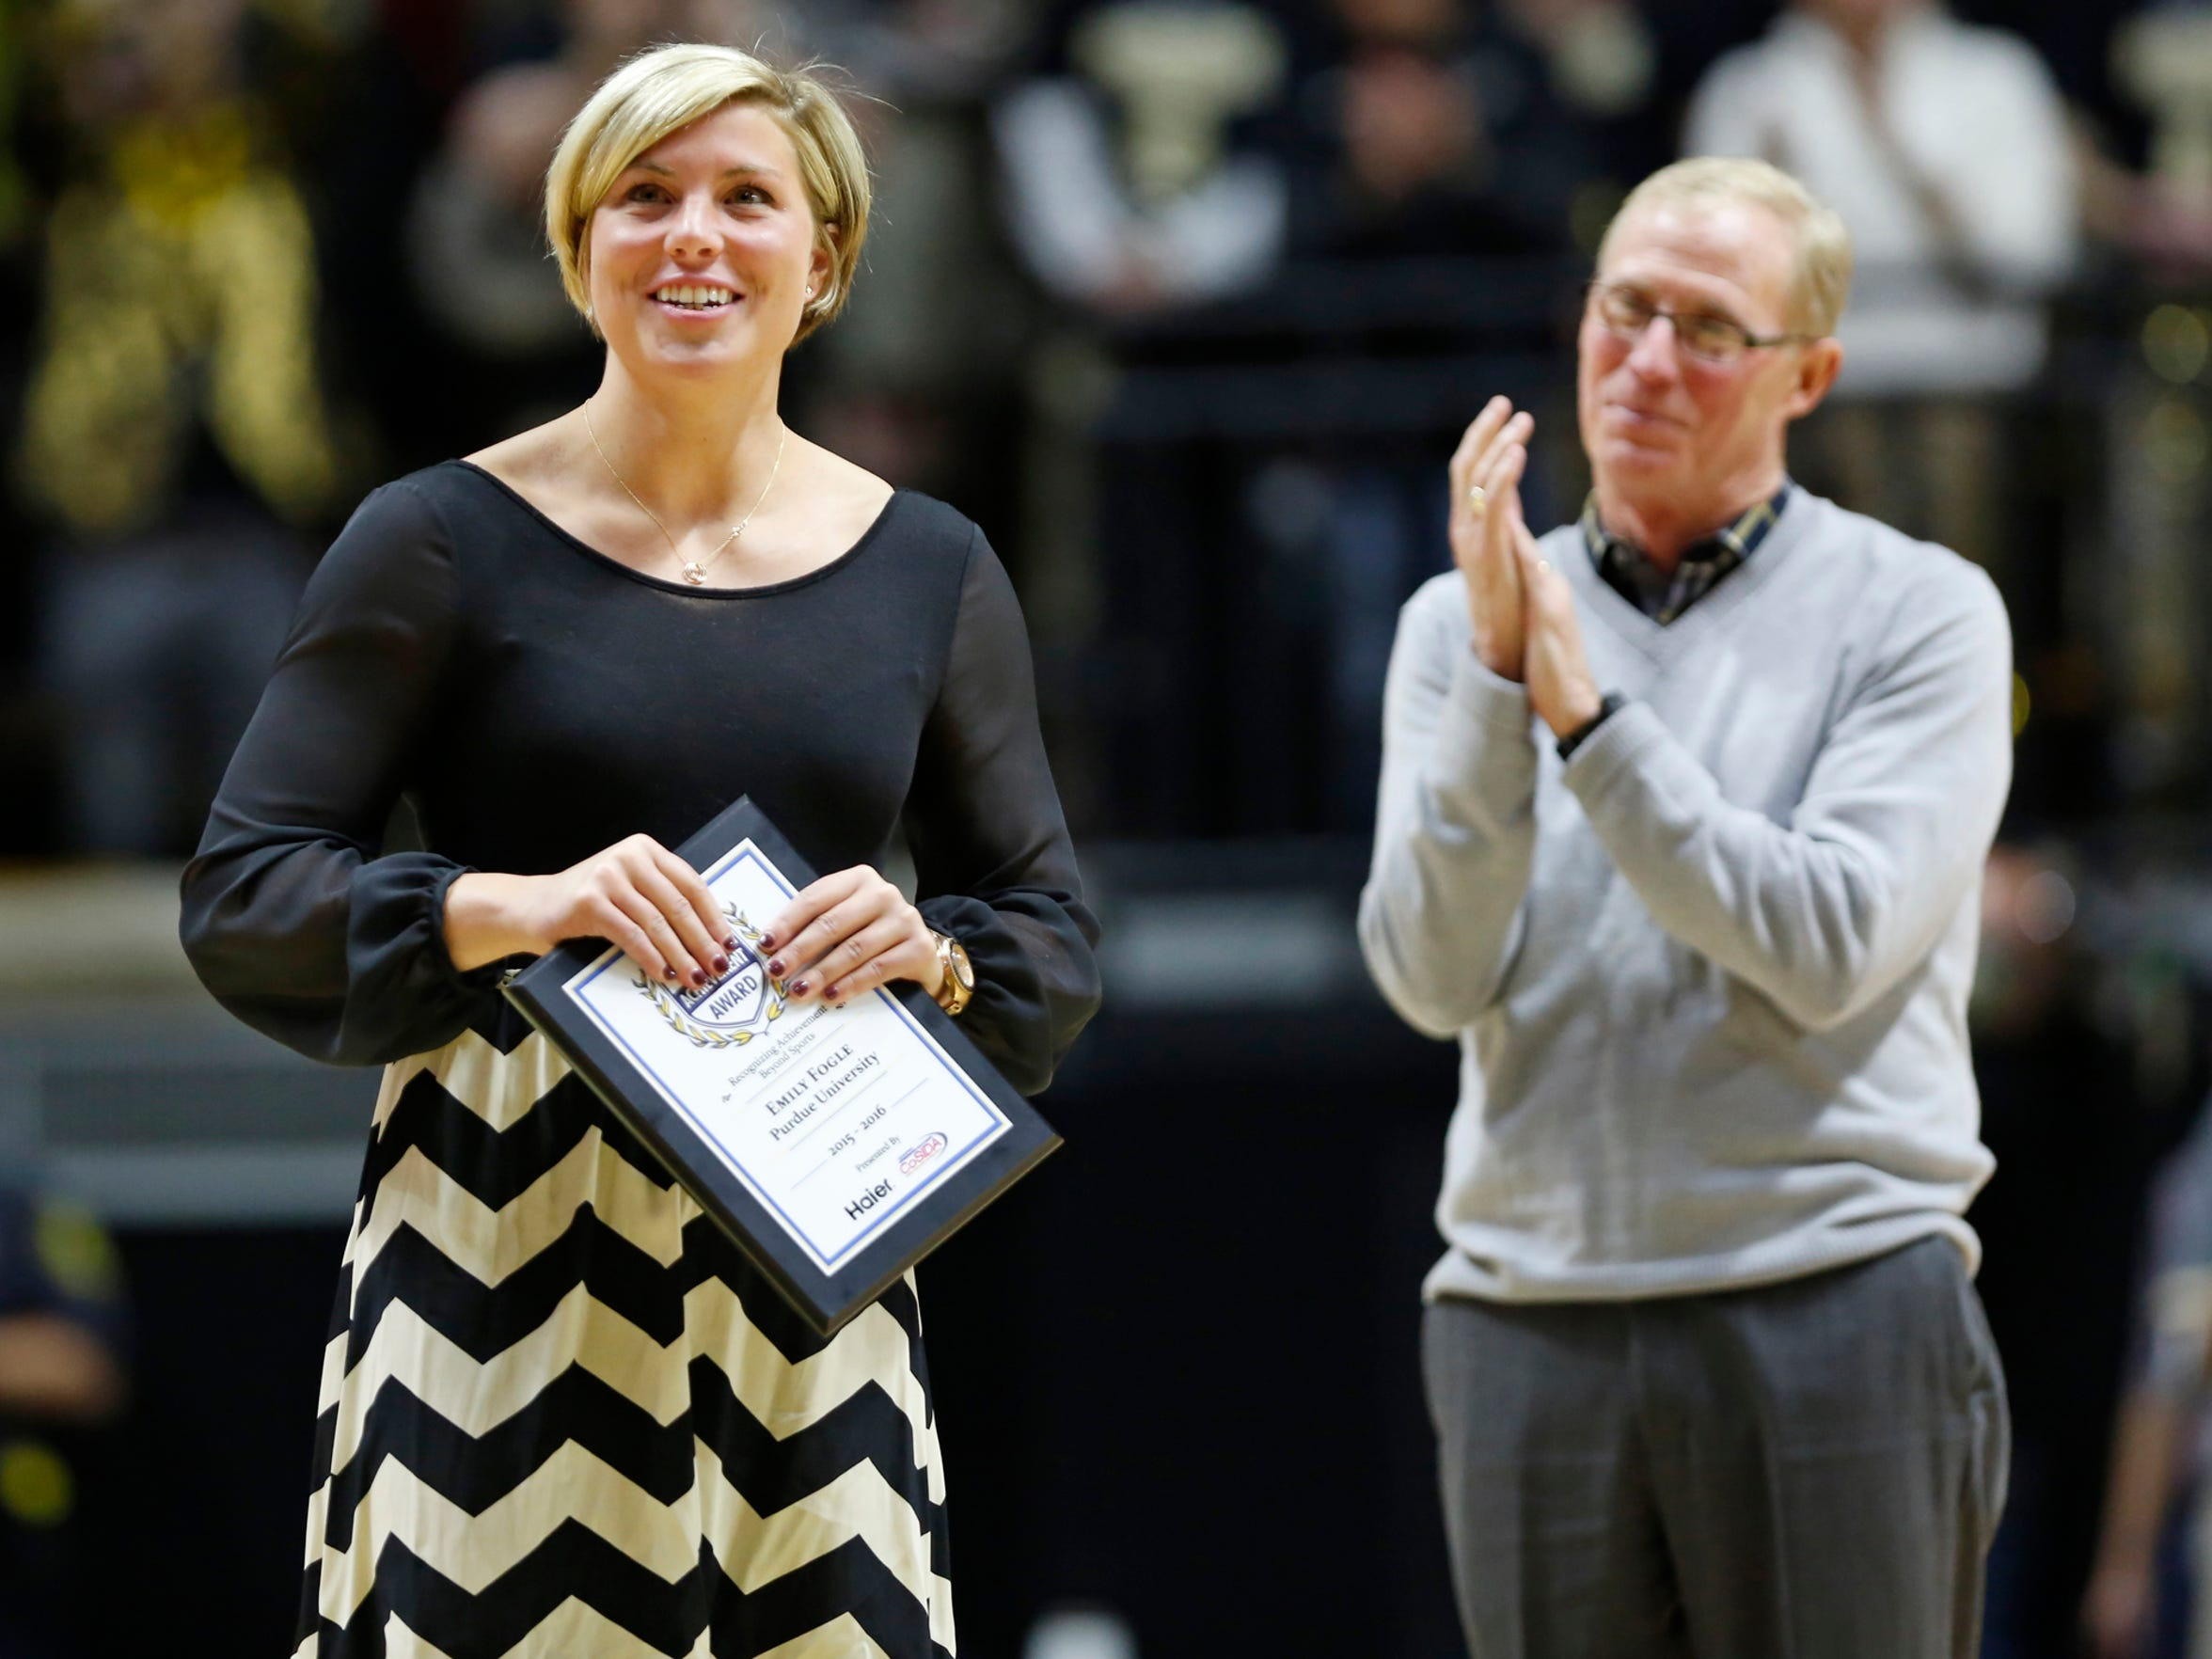 Purdue swimmer Emily Fogle is presented with the Haier